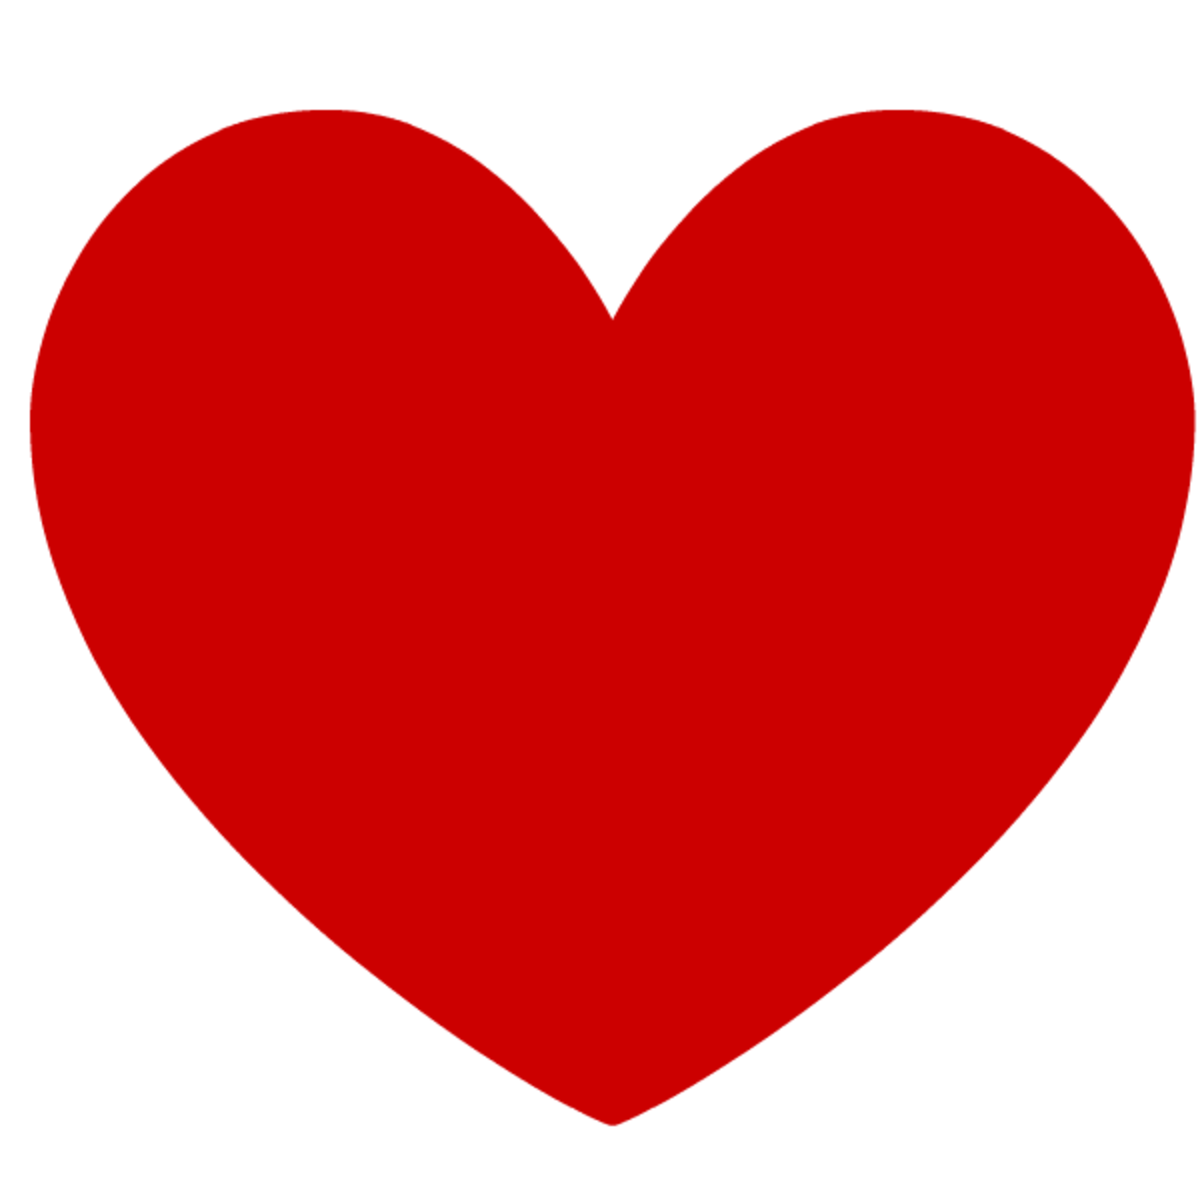 Red heart clip art image